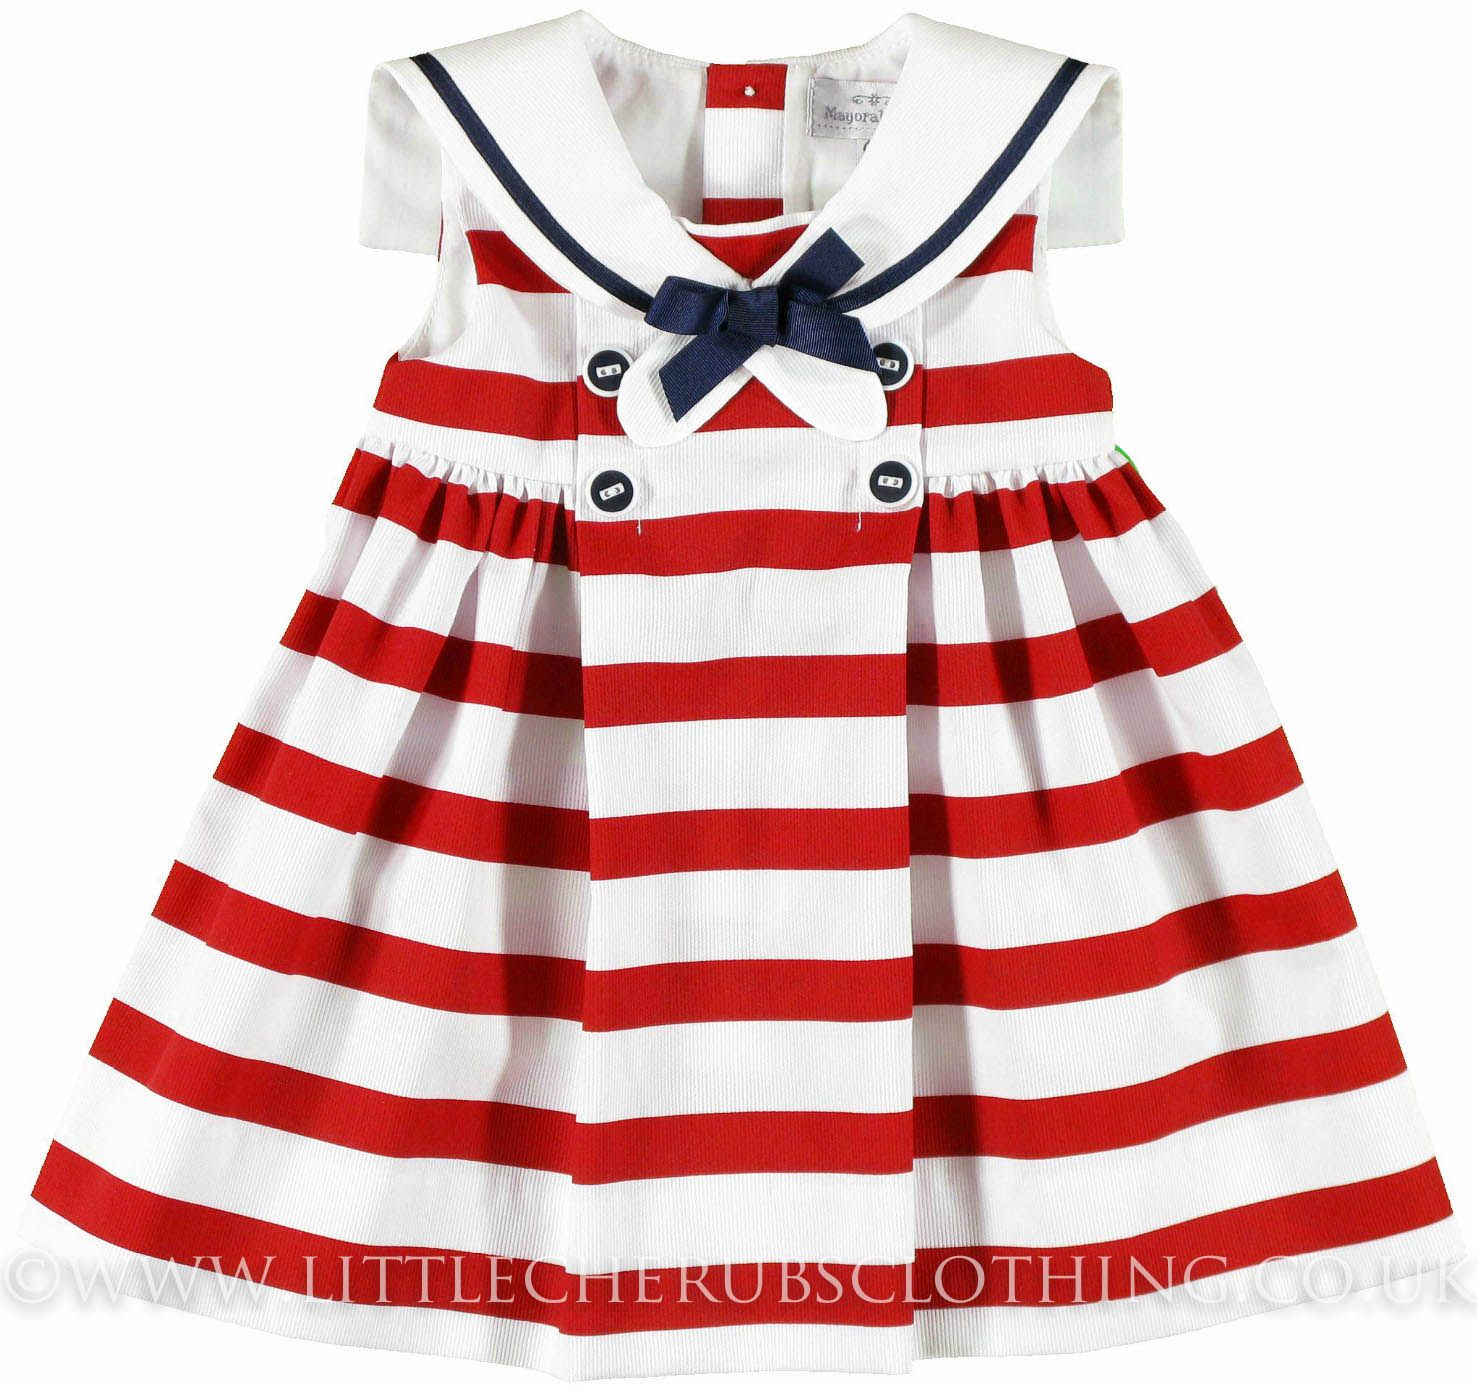 1000  images about Little girl outfits on Pinterest - Sailor dress ...